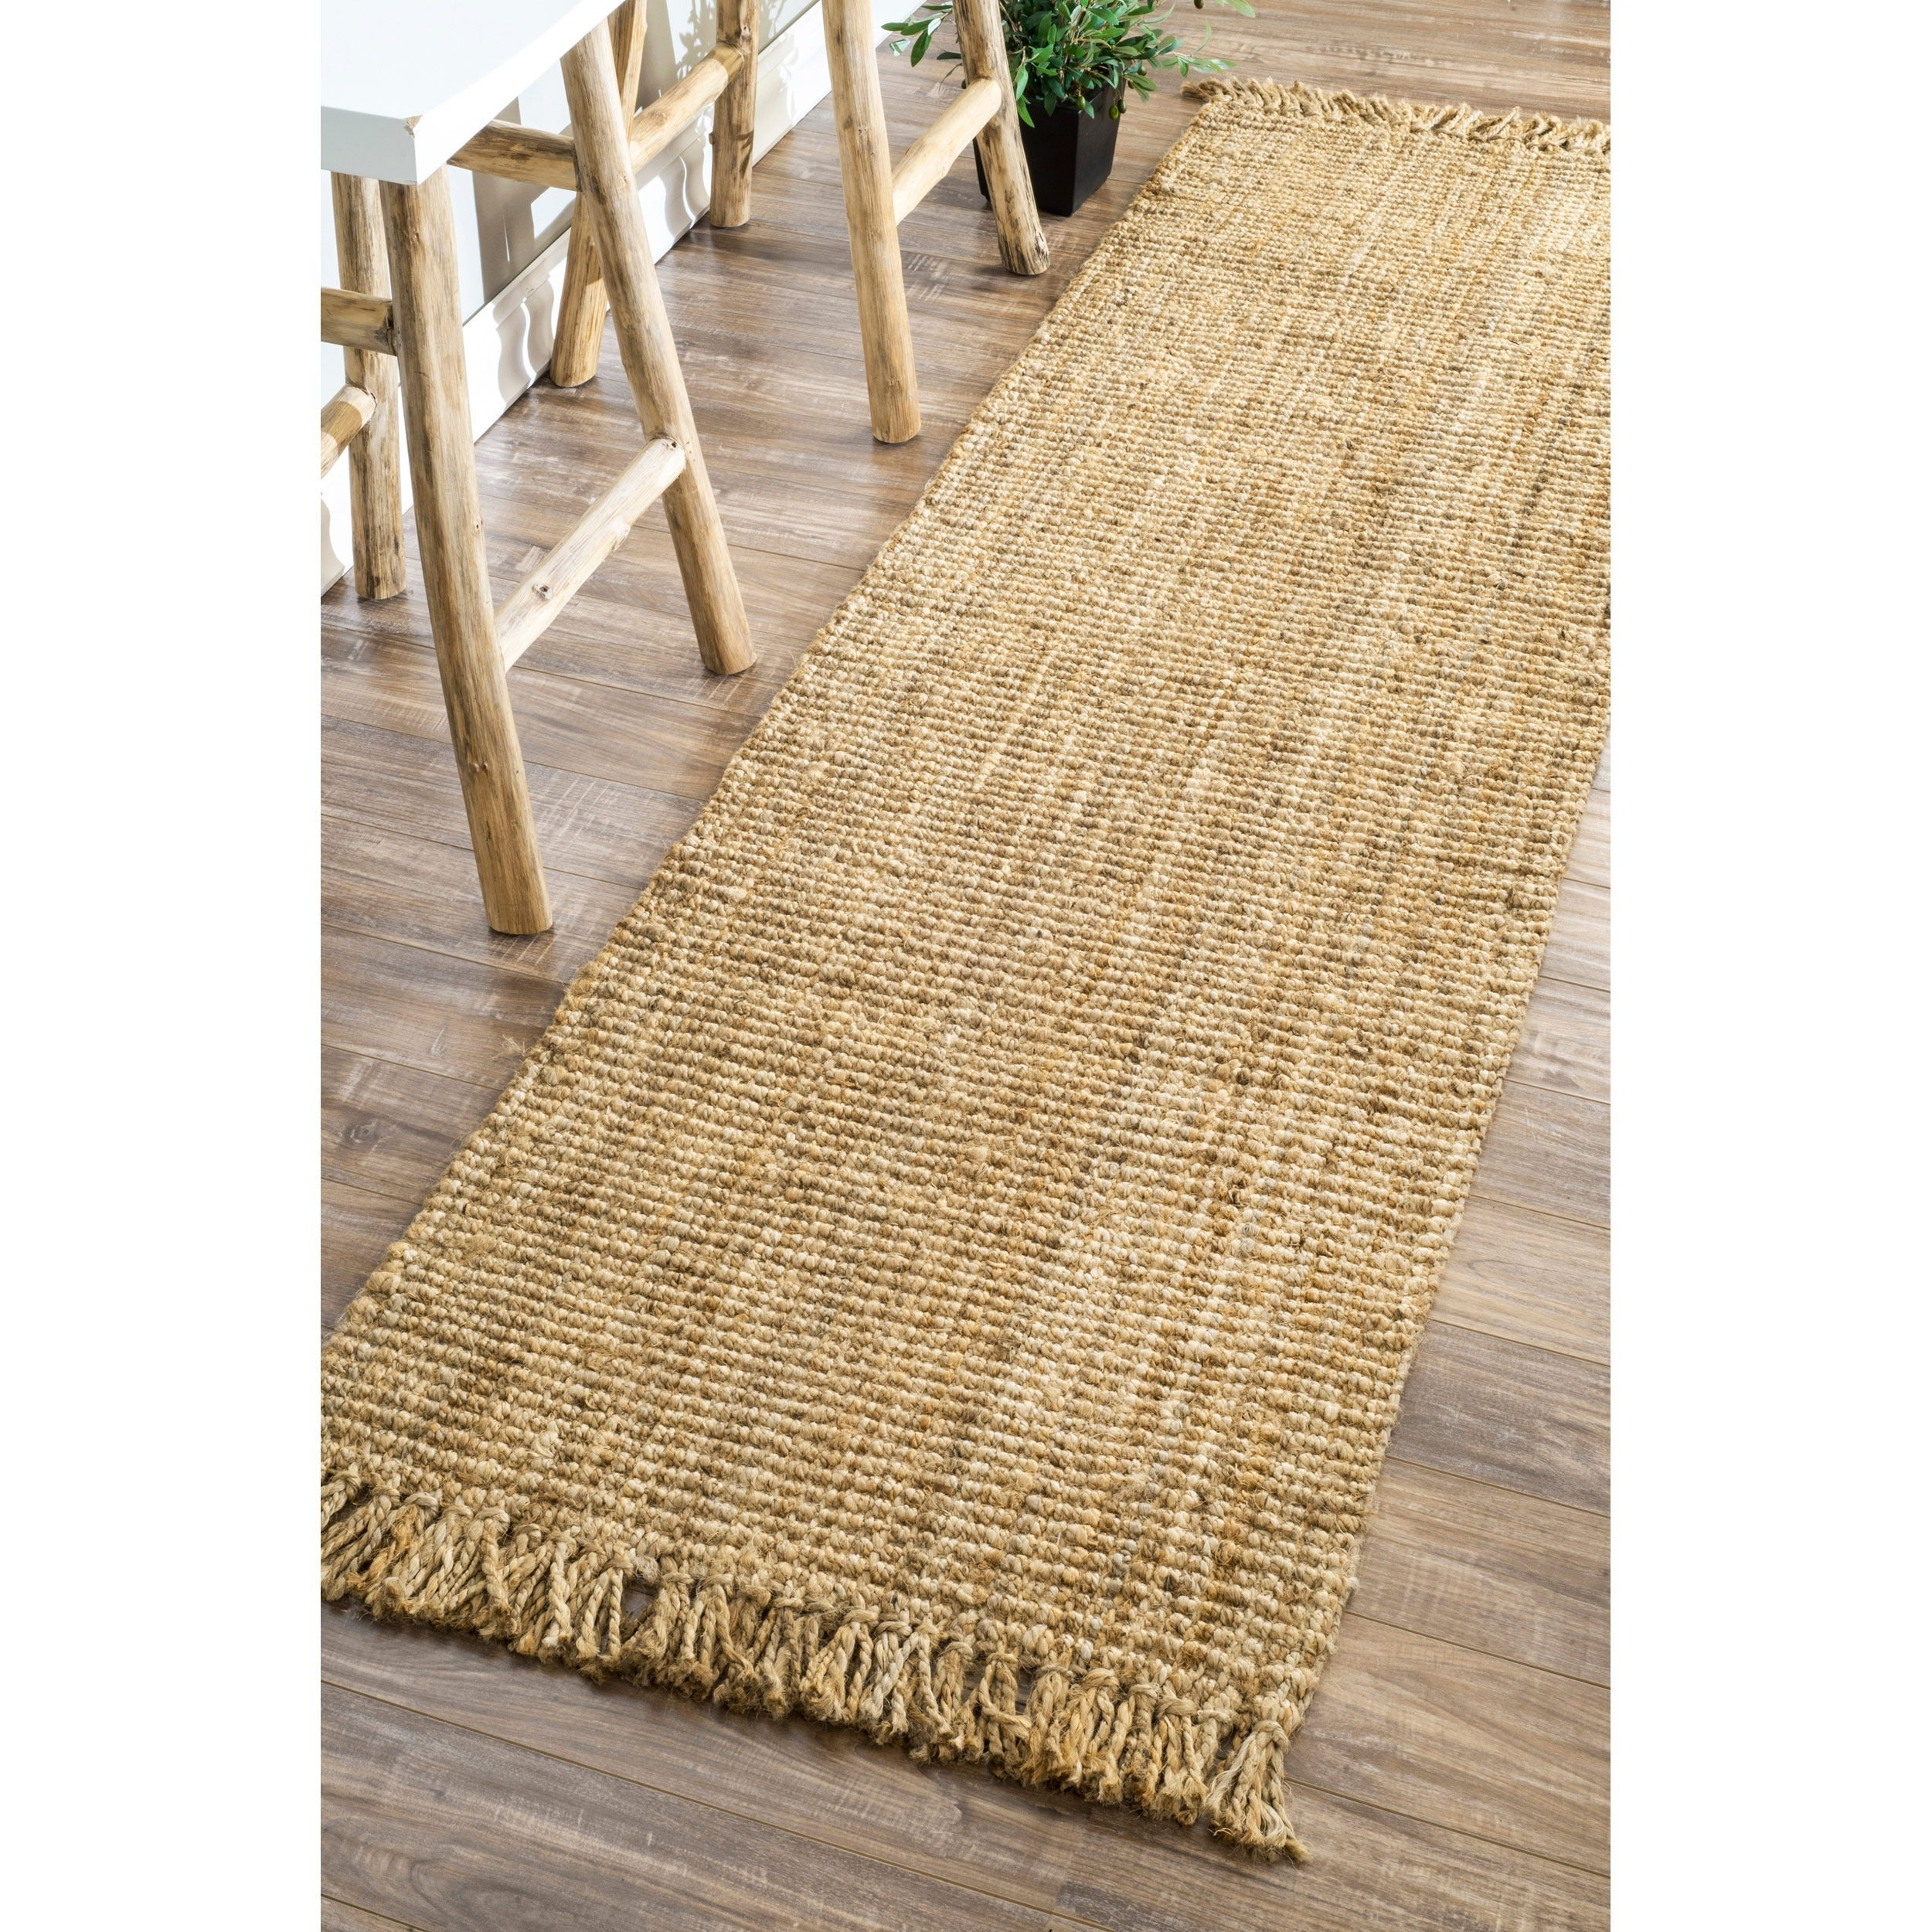 Shop Nuloom Handmade Eco Natural Fiber Chunky Loop Jute